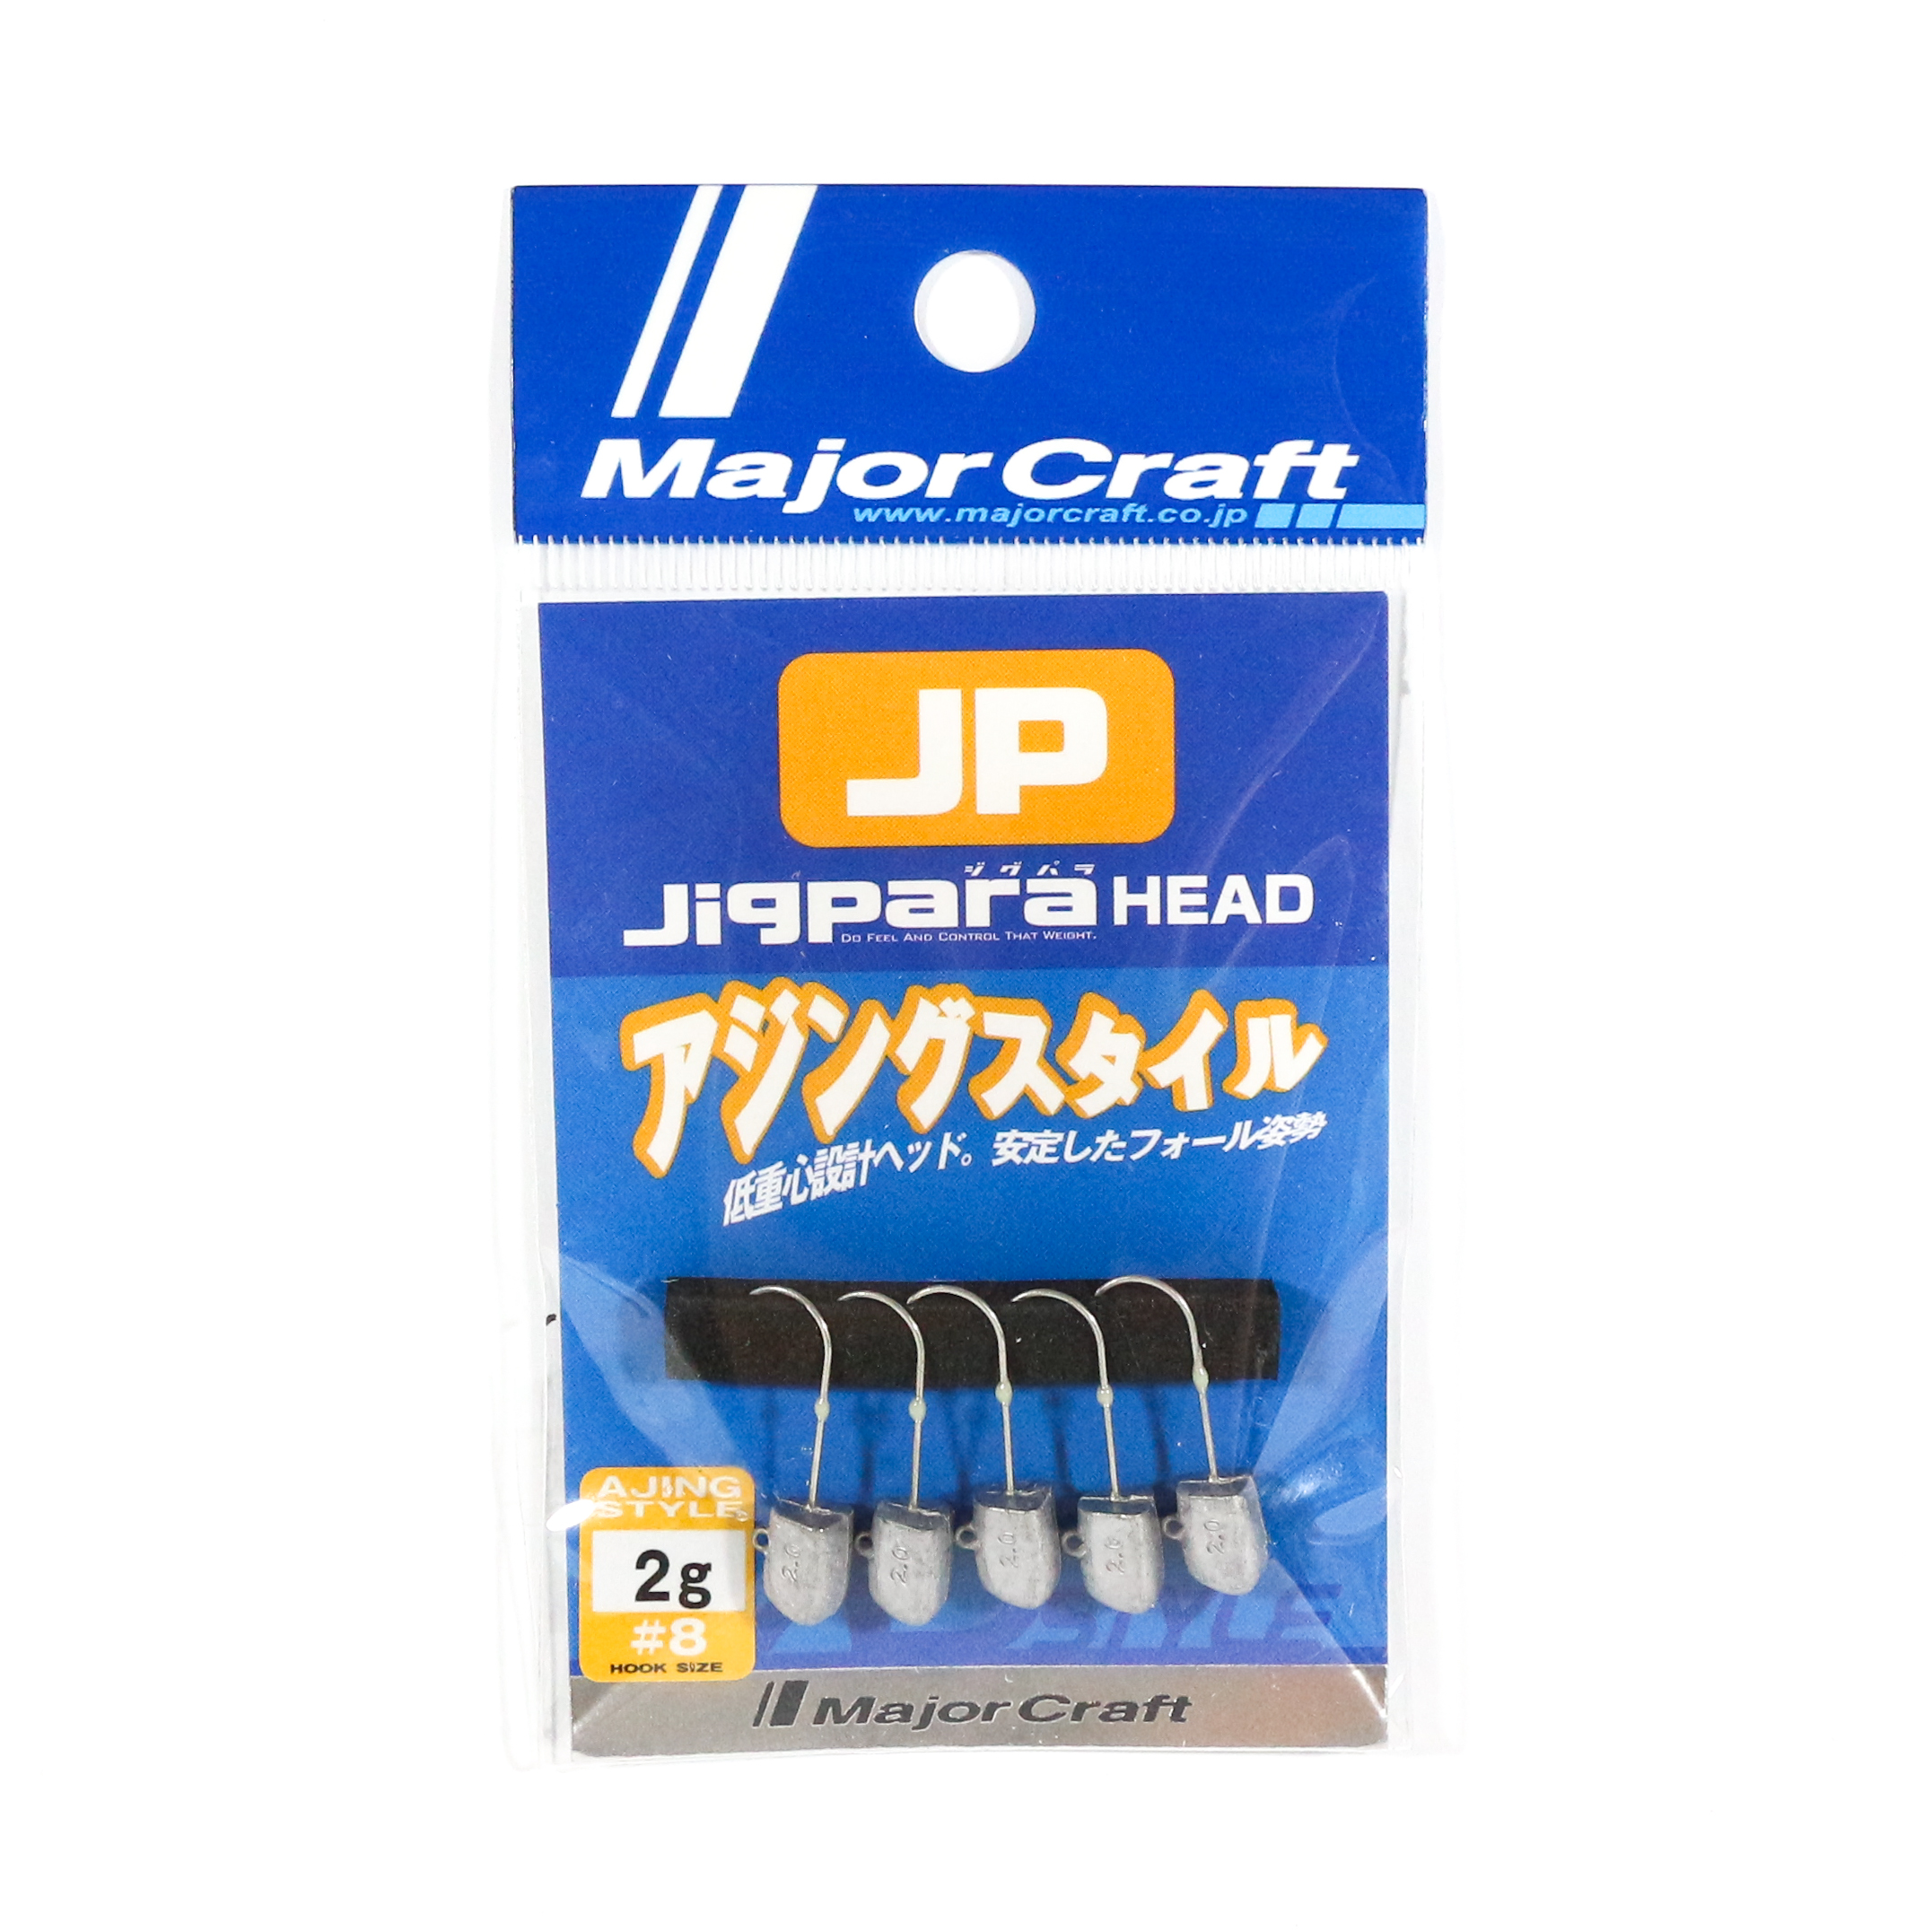 Major Craft Jig Head Aji JPHD-2.0 grams (2777)